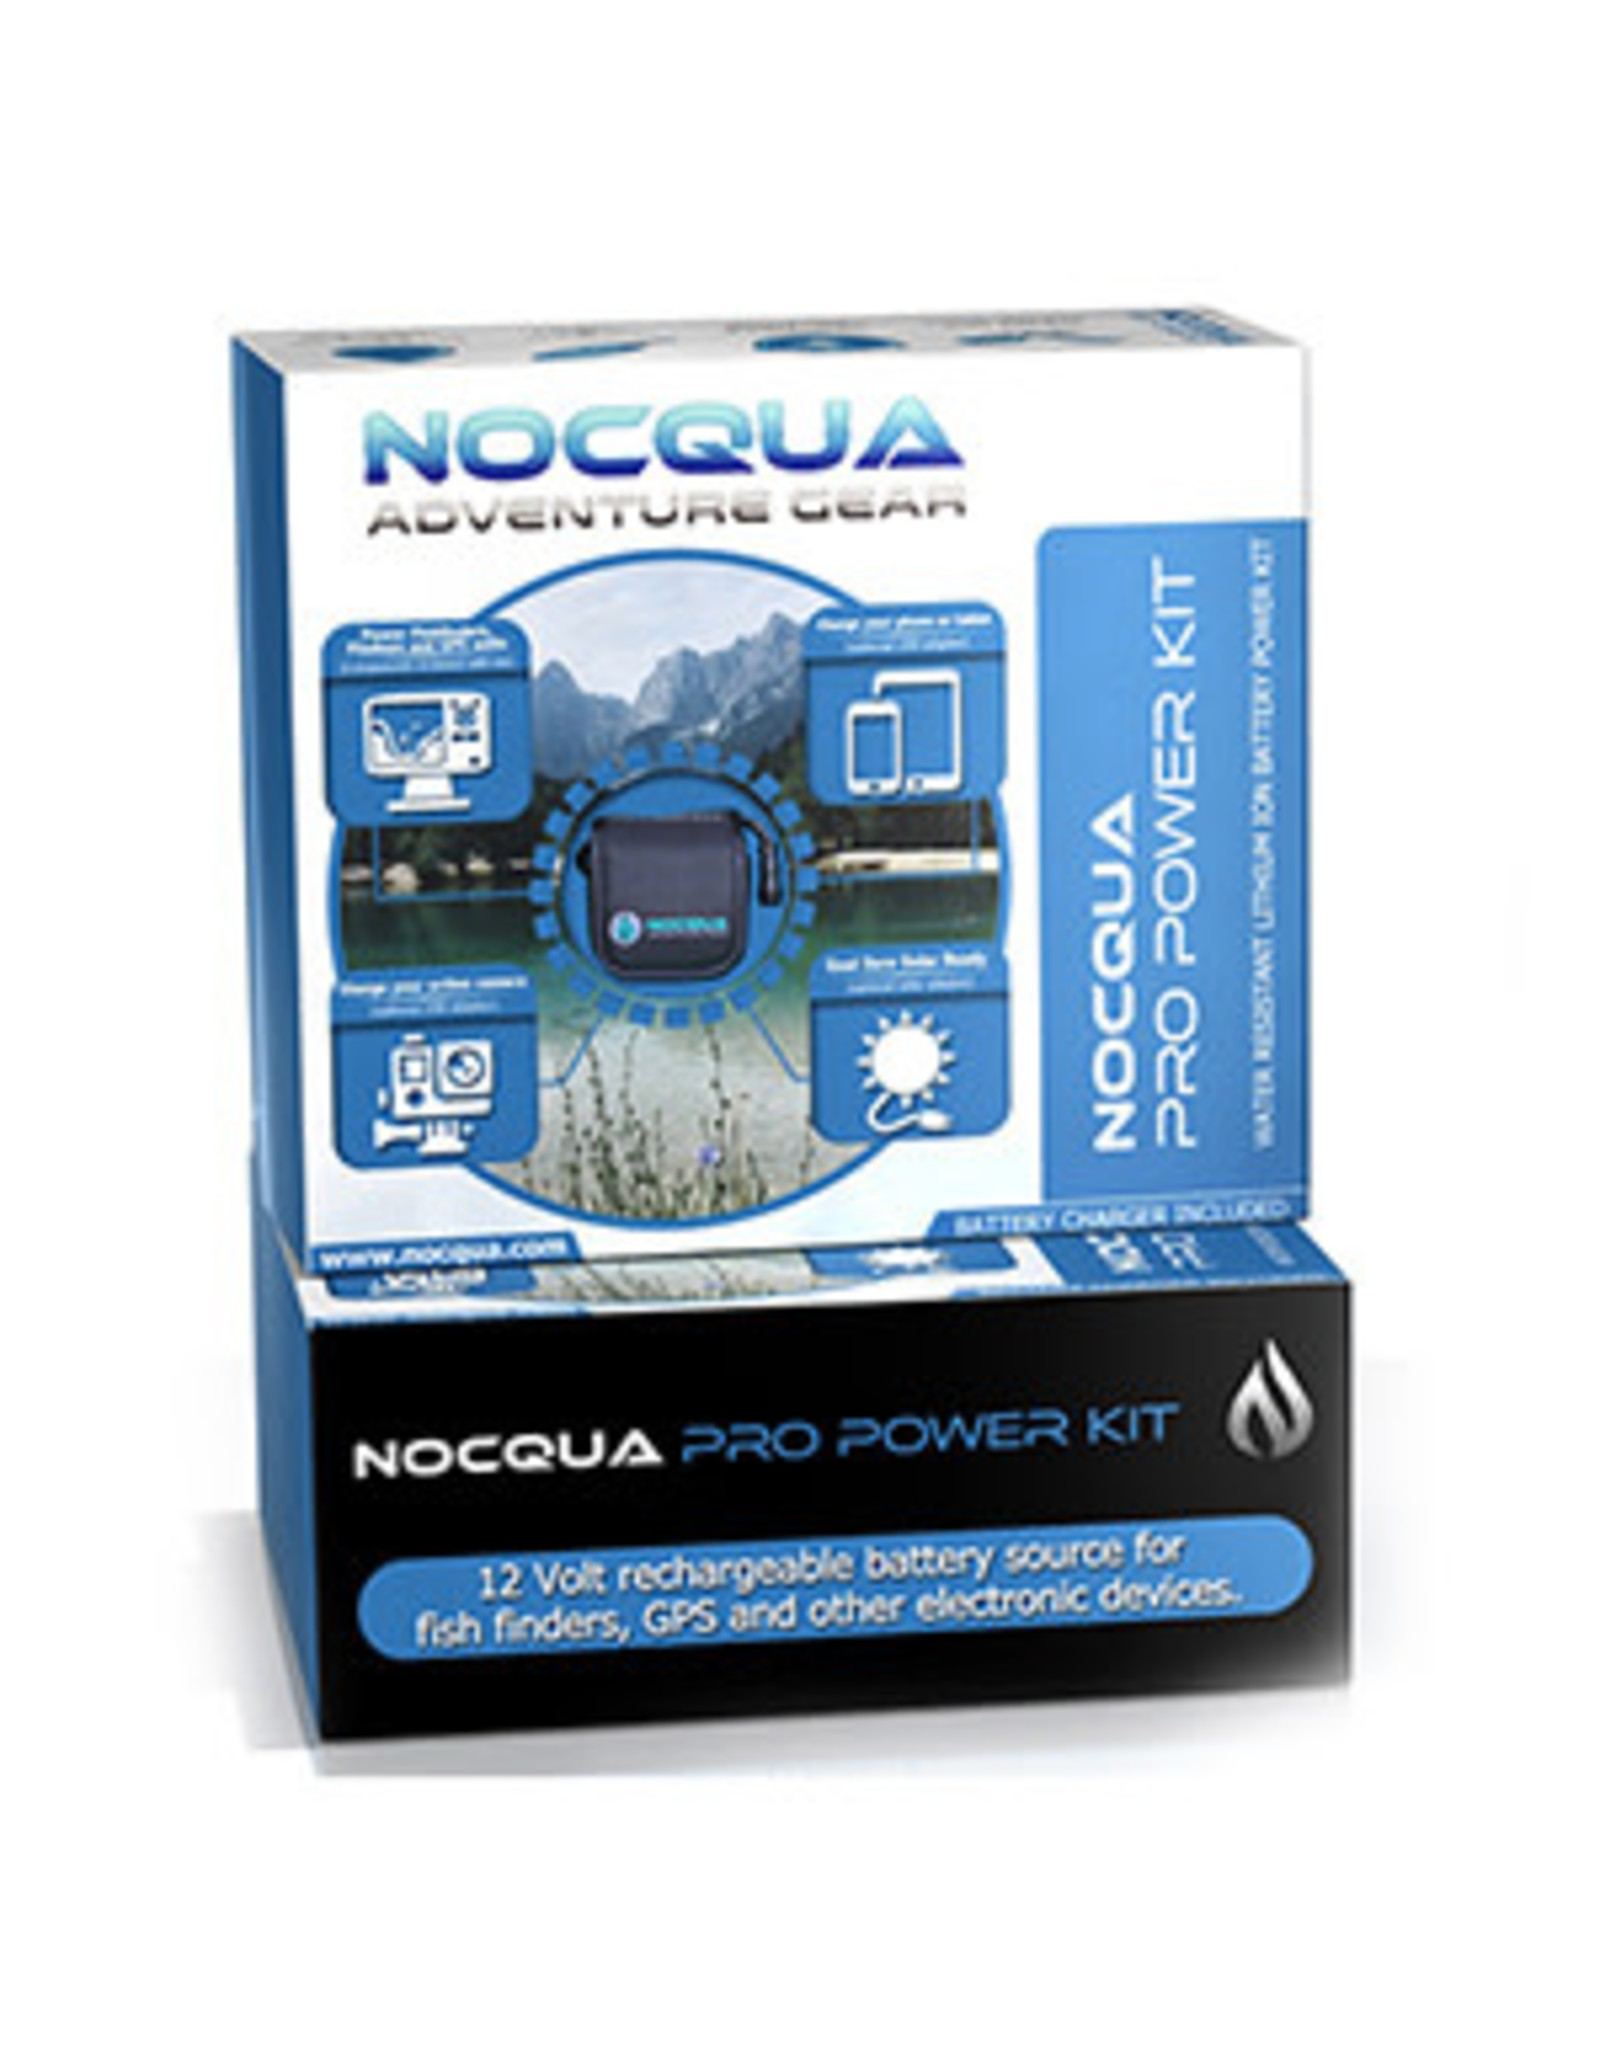 Nocqua Hobie Acc. Batterie - Nocqua Lithium Pro Power Kit 12v 10ah